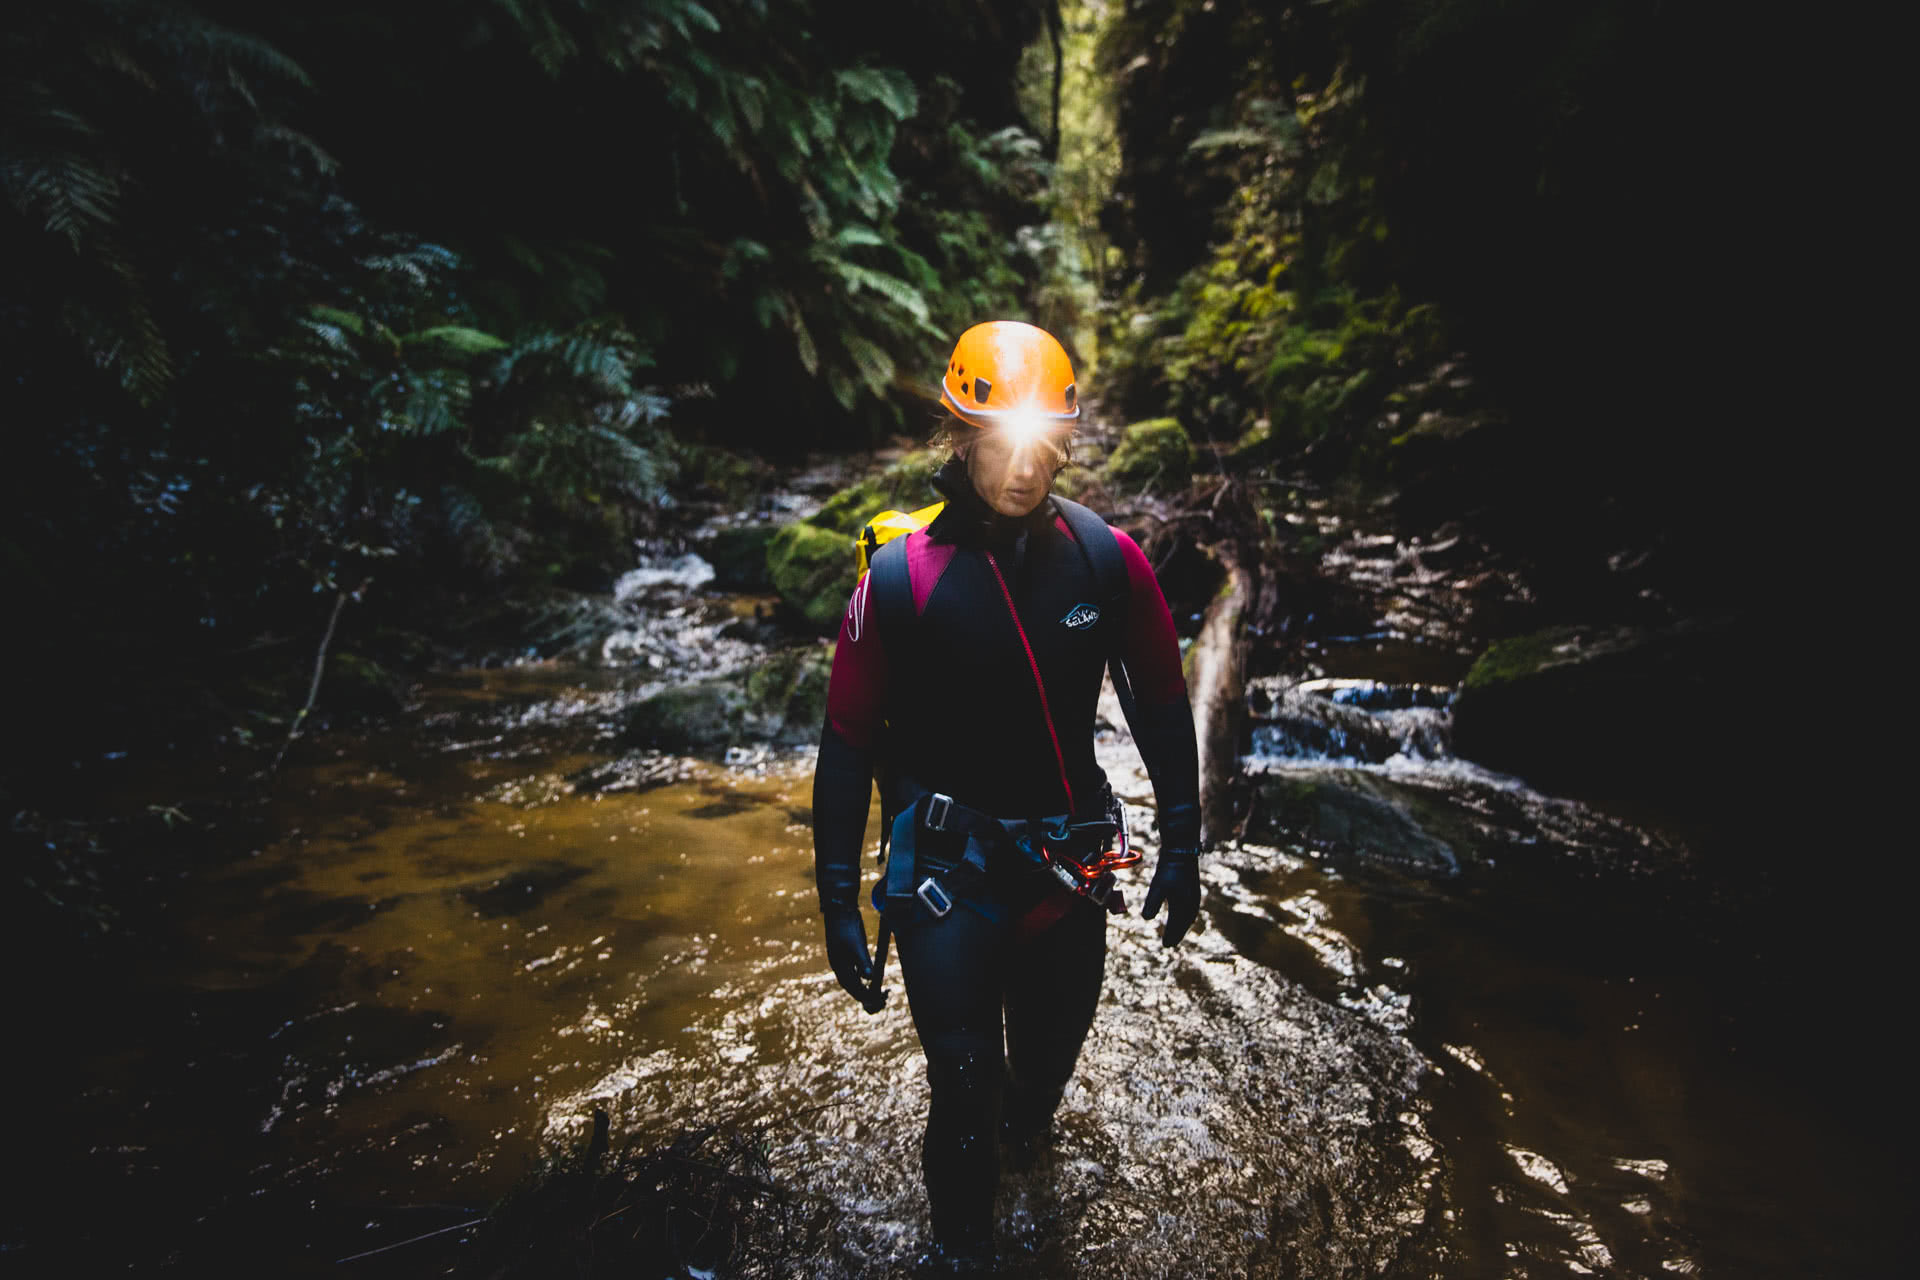 5 Adventures To Make Life Unboring, knog, photo by guy wilmot, empress canyon, blue mountains, nsw, bilby headlamp